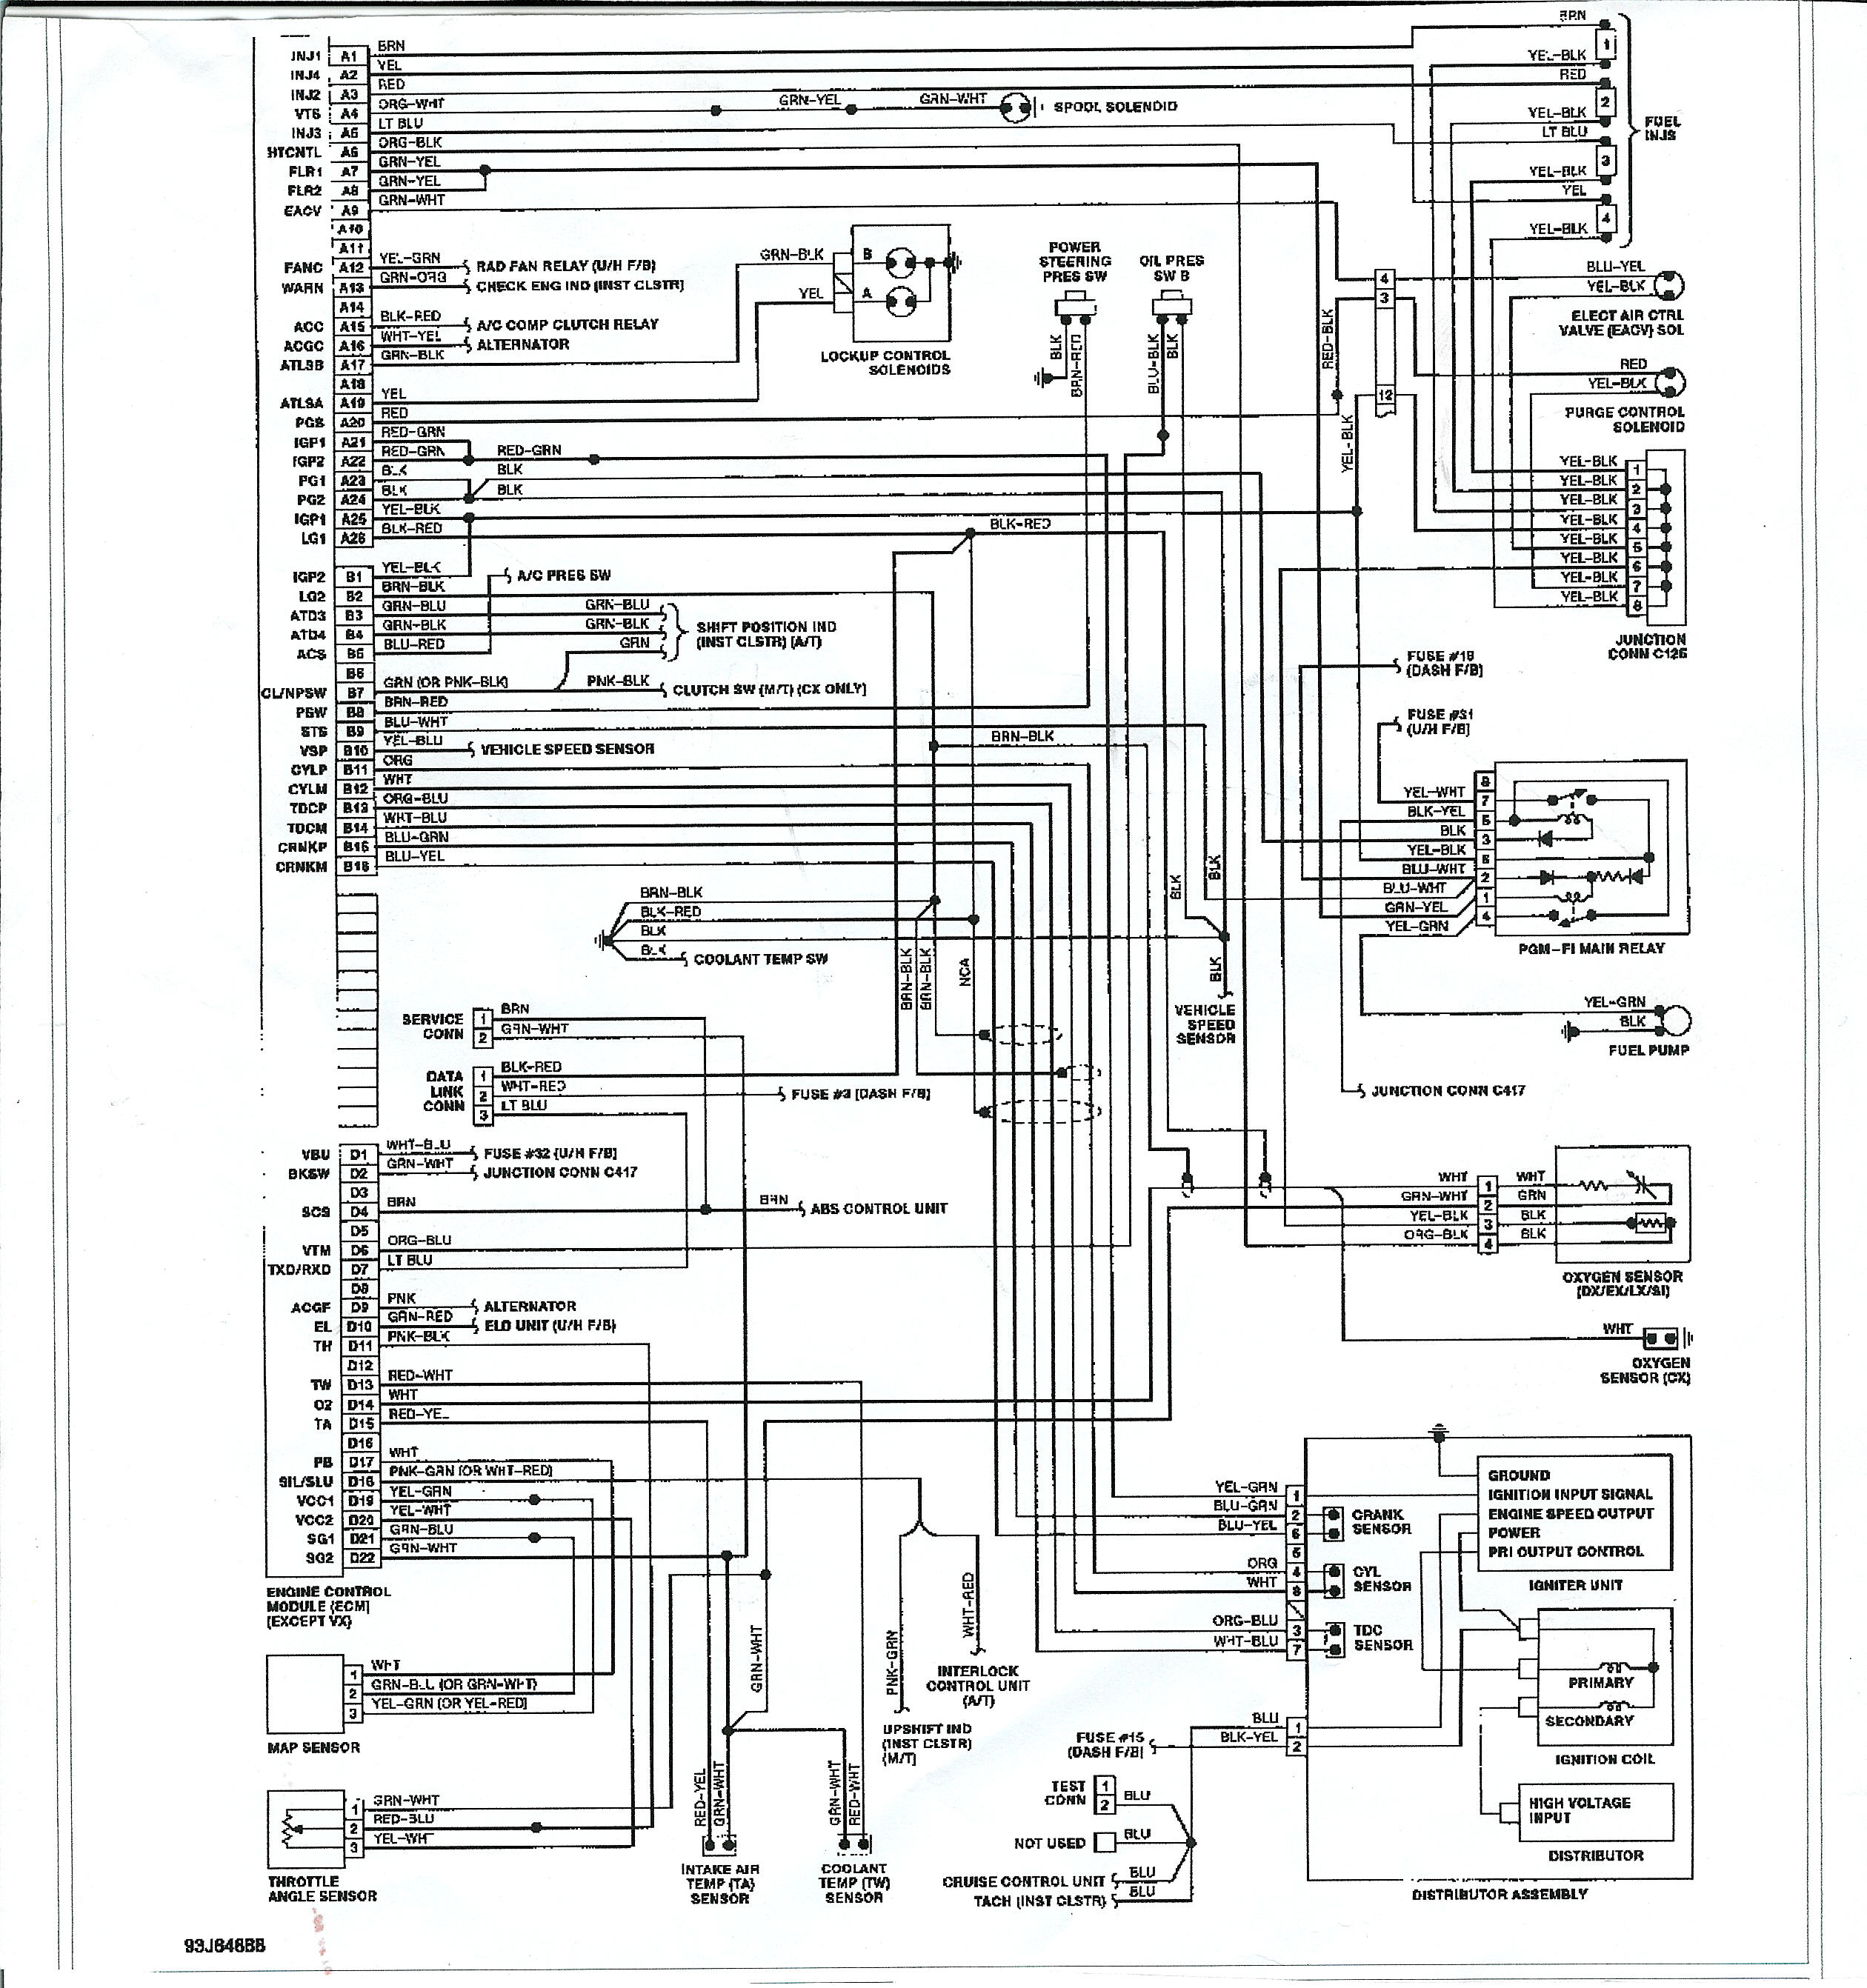 land rover discovery 1 radio wiring diagram with Speaker Wiring Diagram 97 Honda Civic on P38 Wiring Harness together with Land Rover Discovery 4 Wiring Diagram furthermore 04 Range Rover Fuse Box Fuel Pump Problems together with 1985 Toyota Land Rover Instrument Cluster Wiring Diagram furthermore Speaker Wiring Diagram 97 Honda Civic.